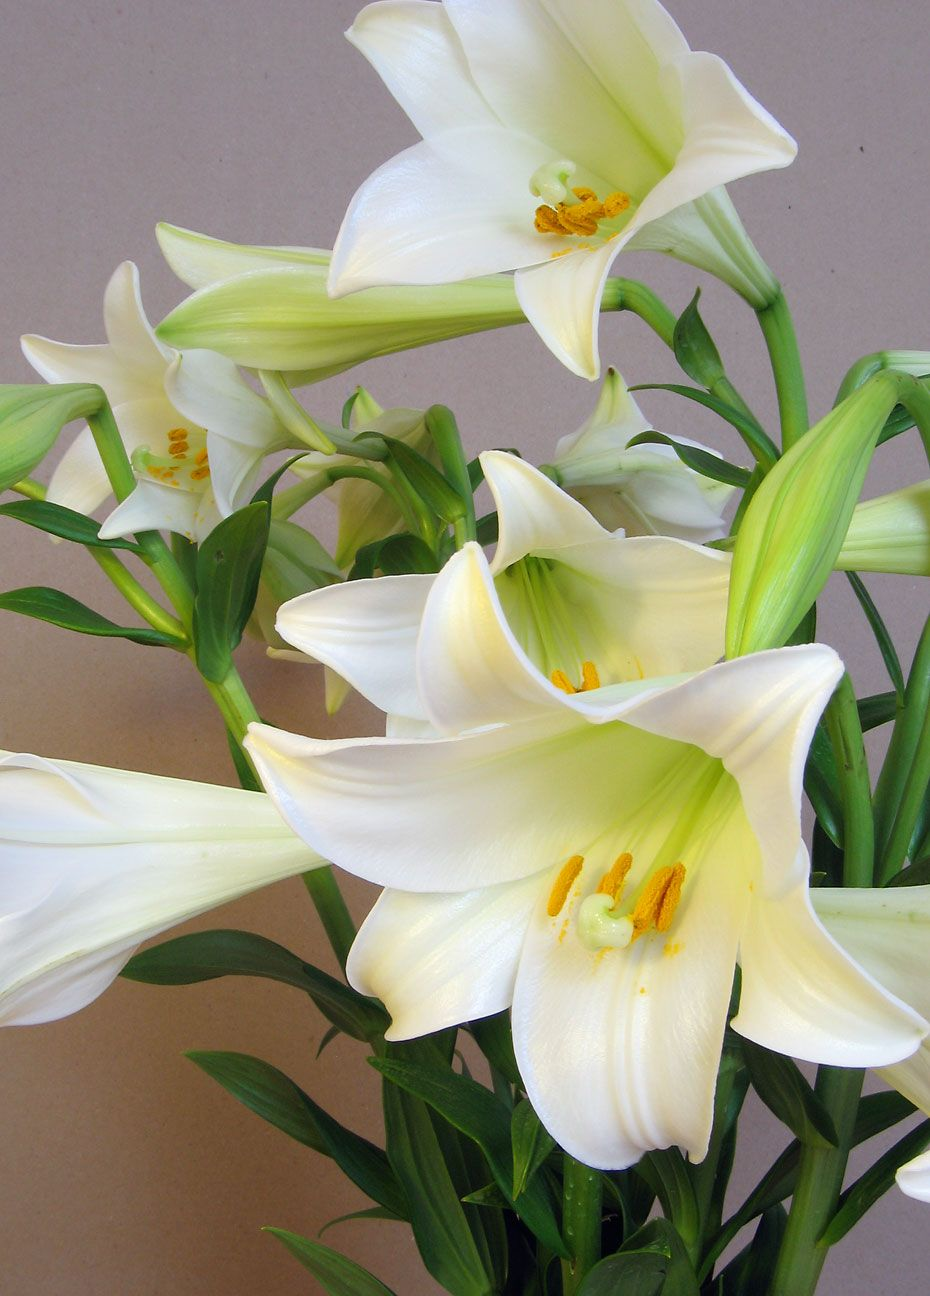 Easter lilies they always bring back wonderful easter morning easter lilies they always bring back wonderful easter morning memories dhlflorist Choice Image